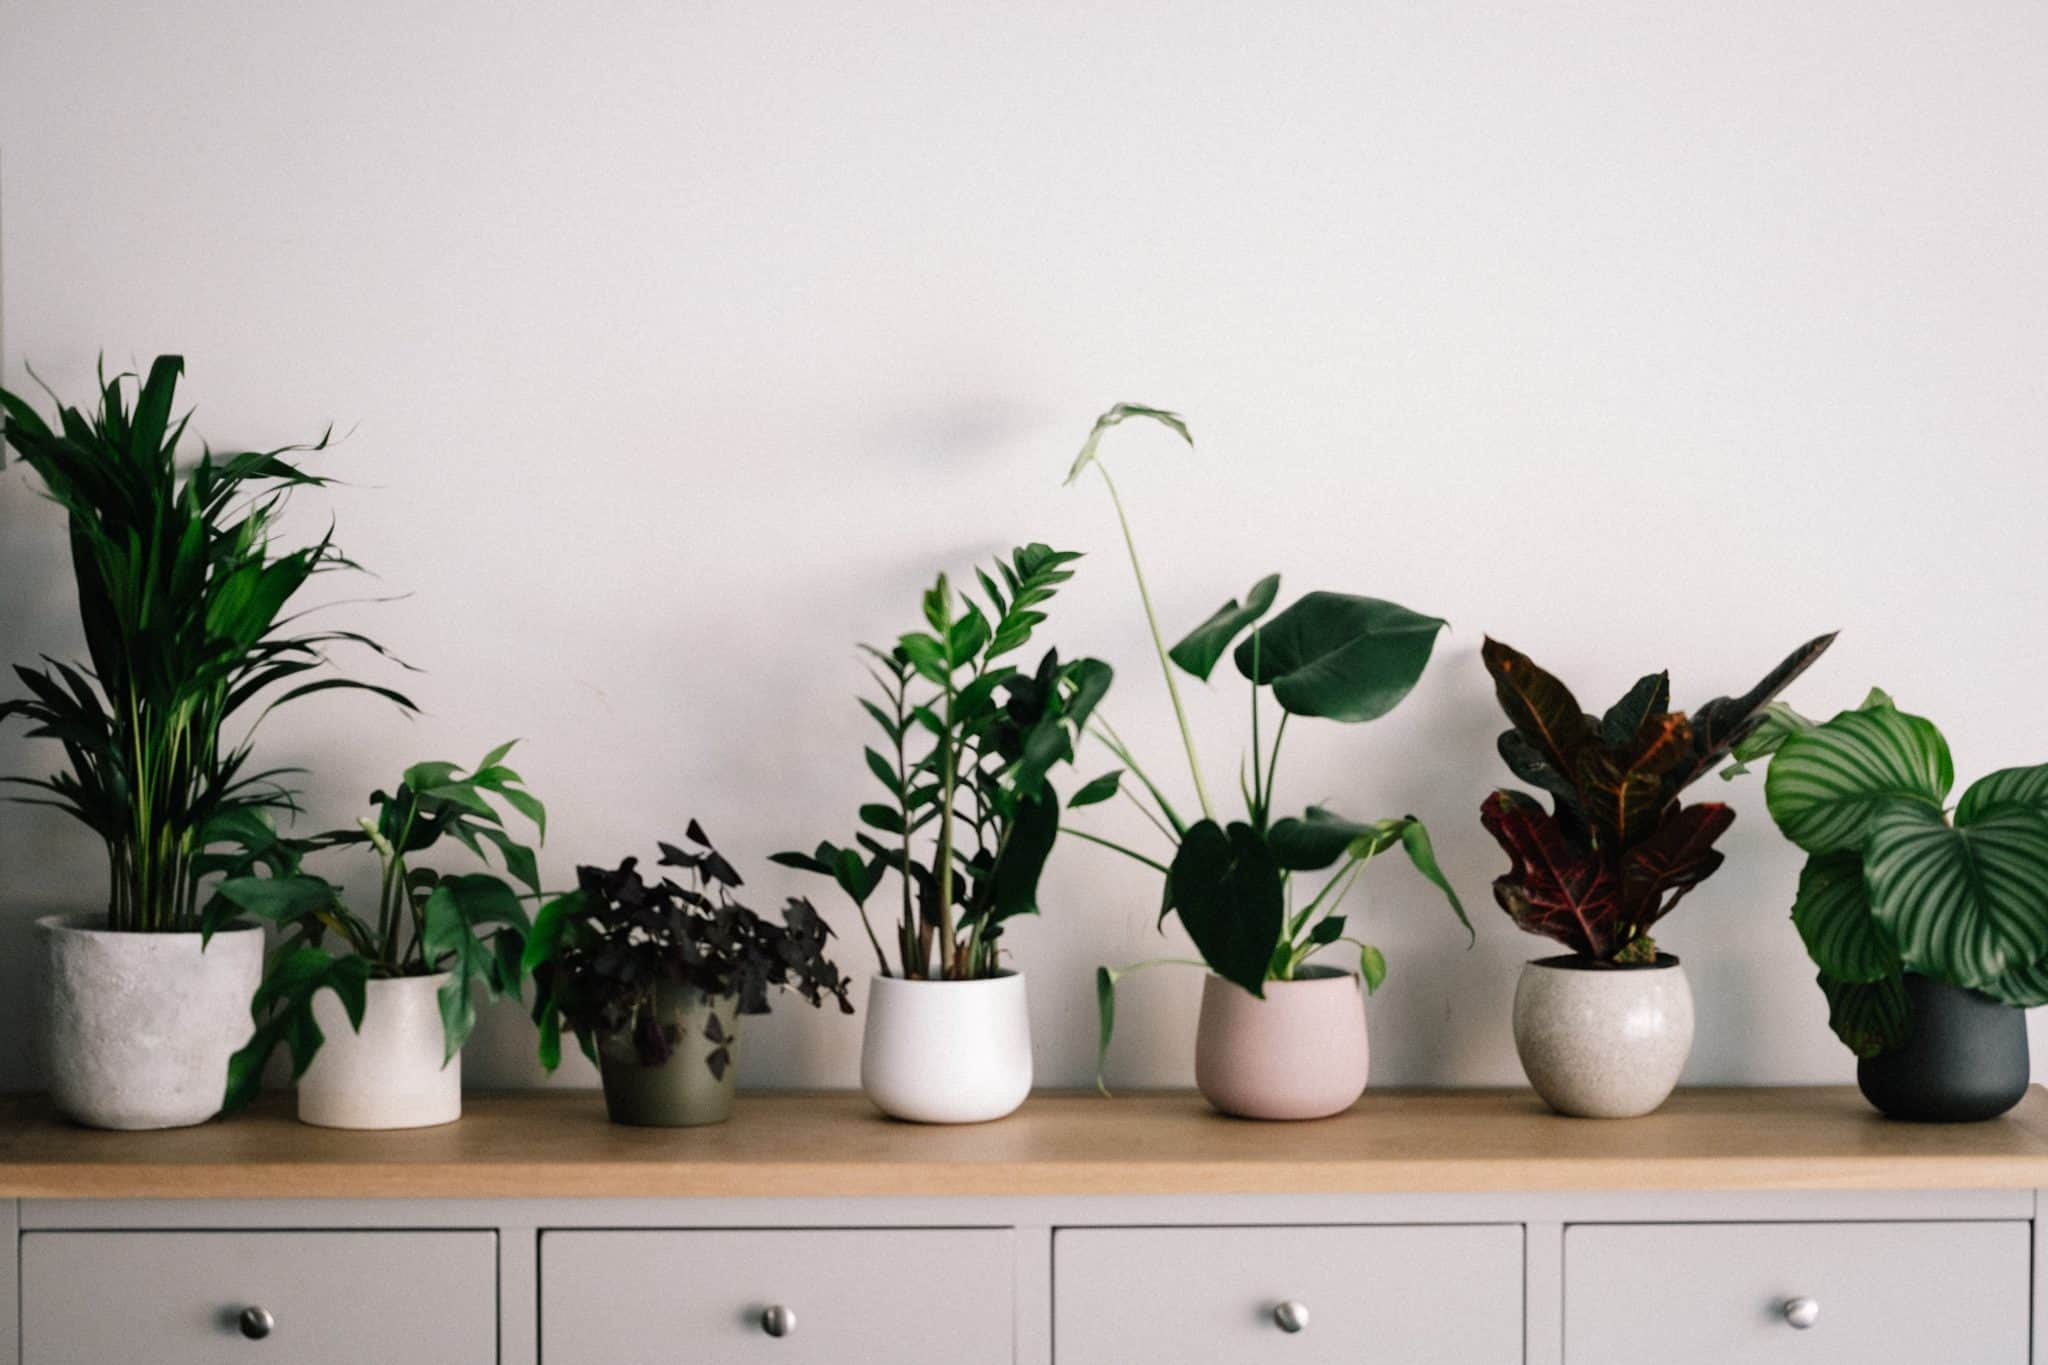 Row of houseplants in white pots on a cabinet